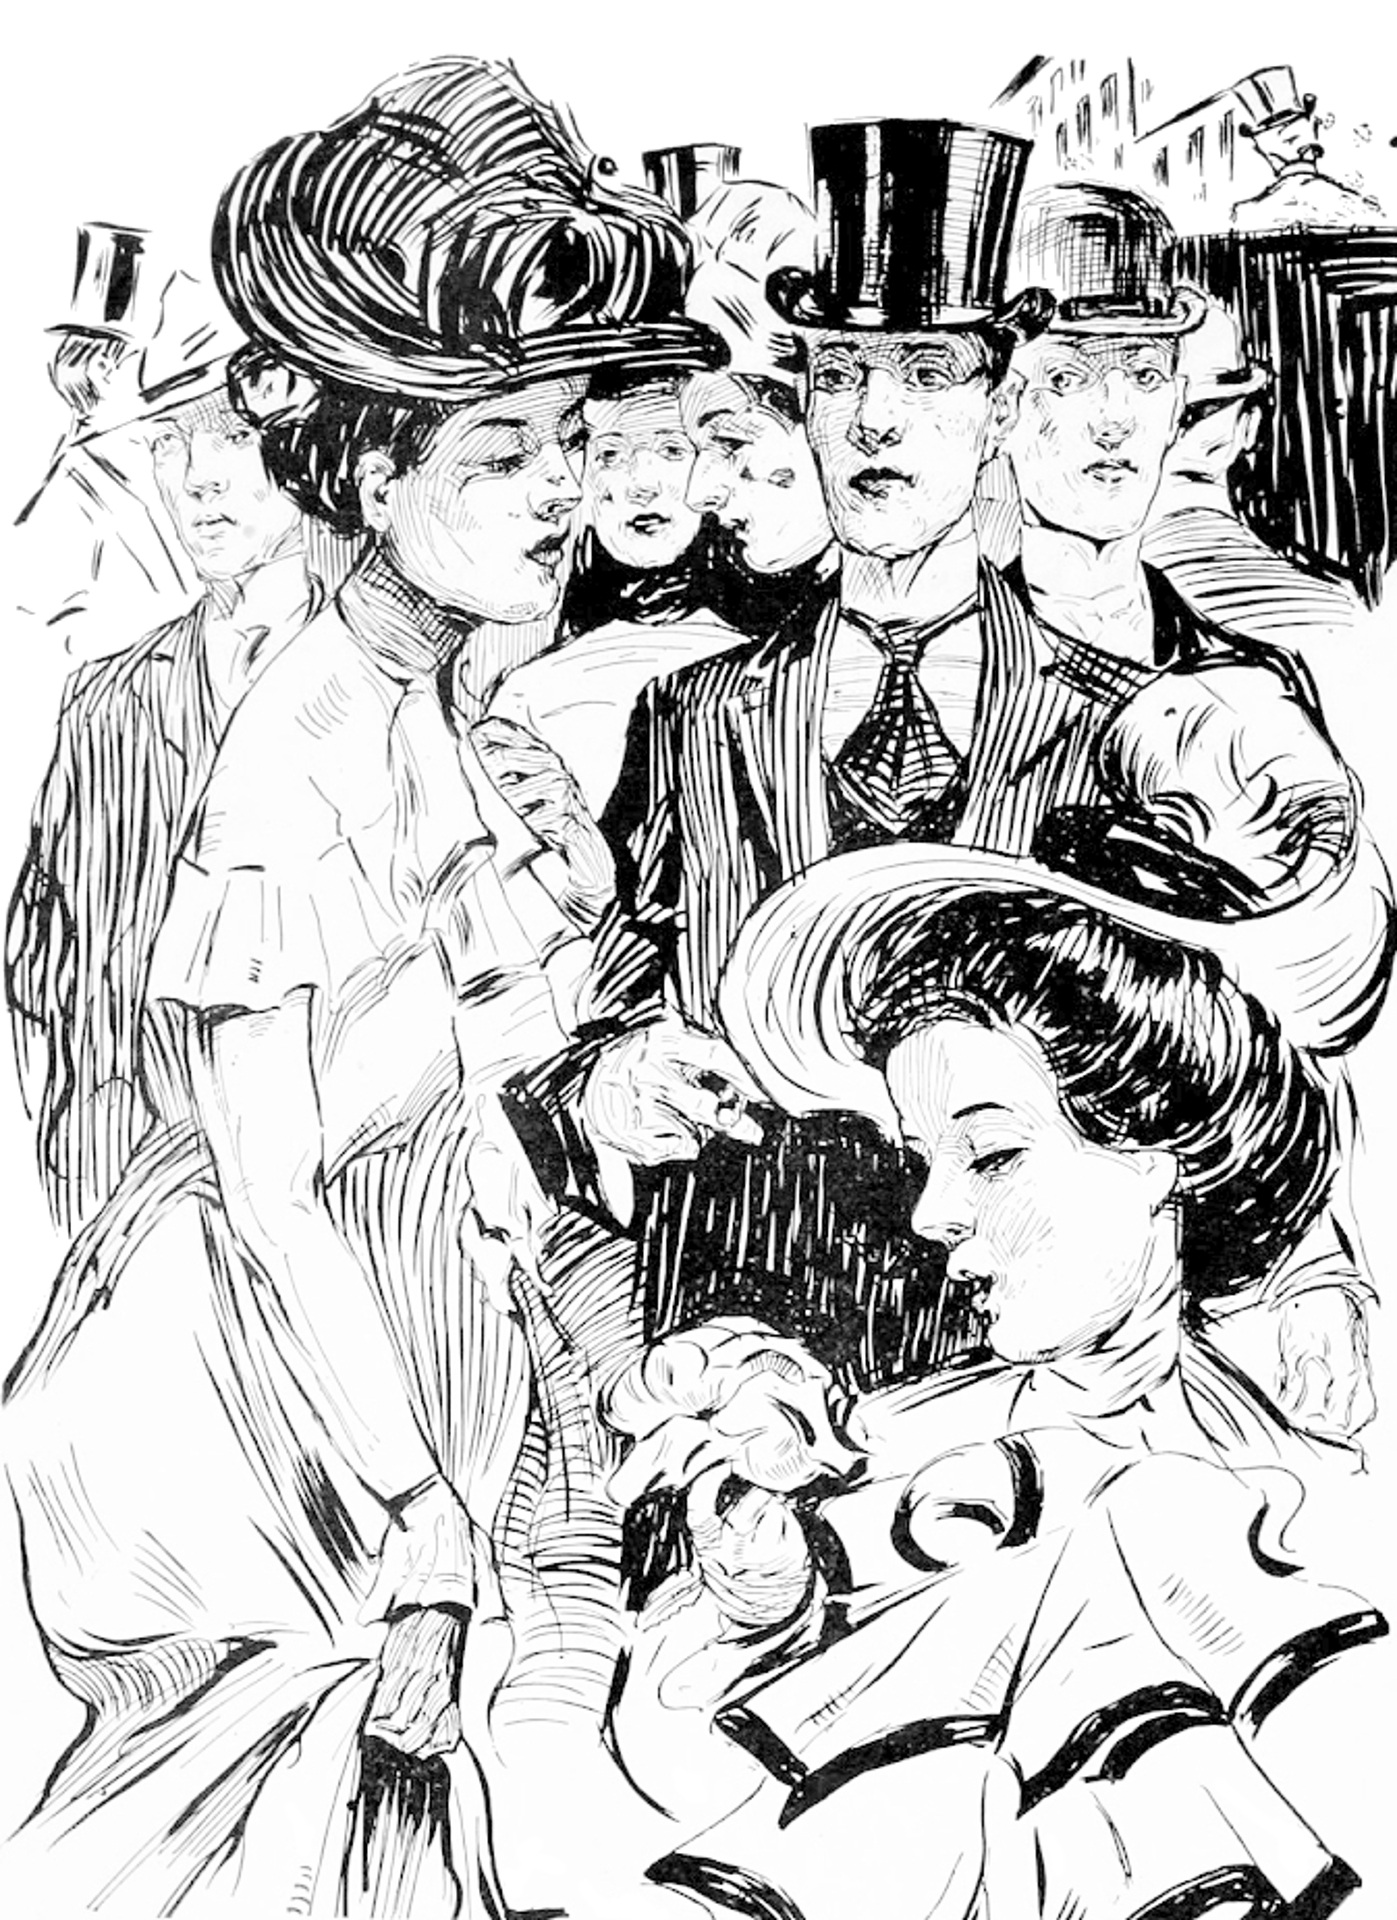 Vintage Drawing of People, Activity, Drawing, Graphics, Man, HQ Photo